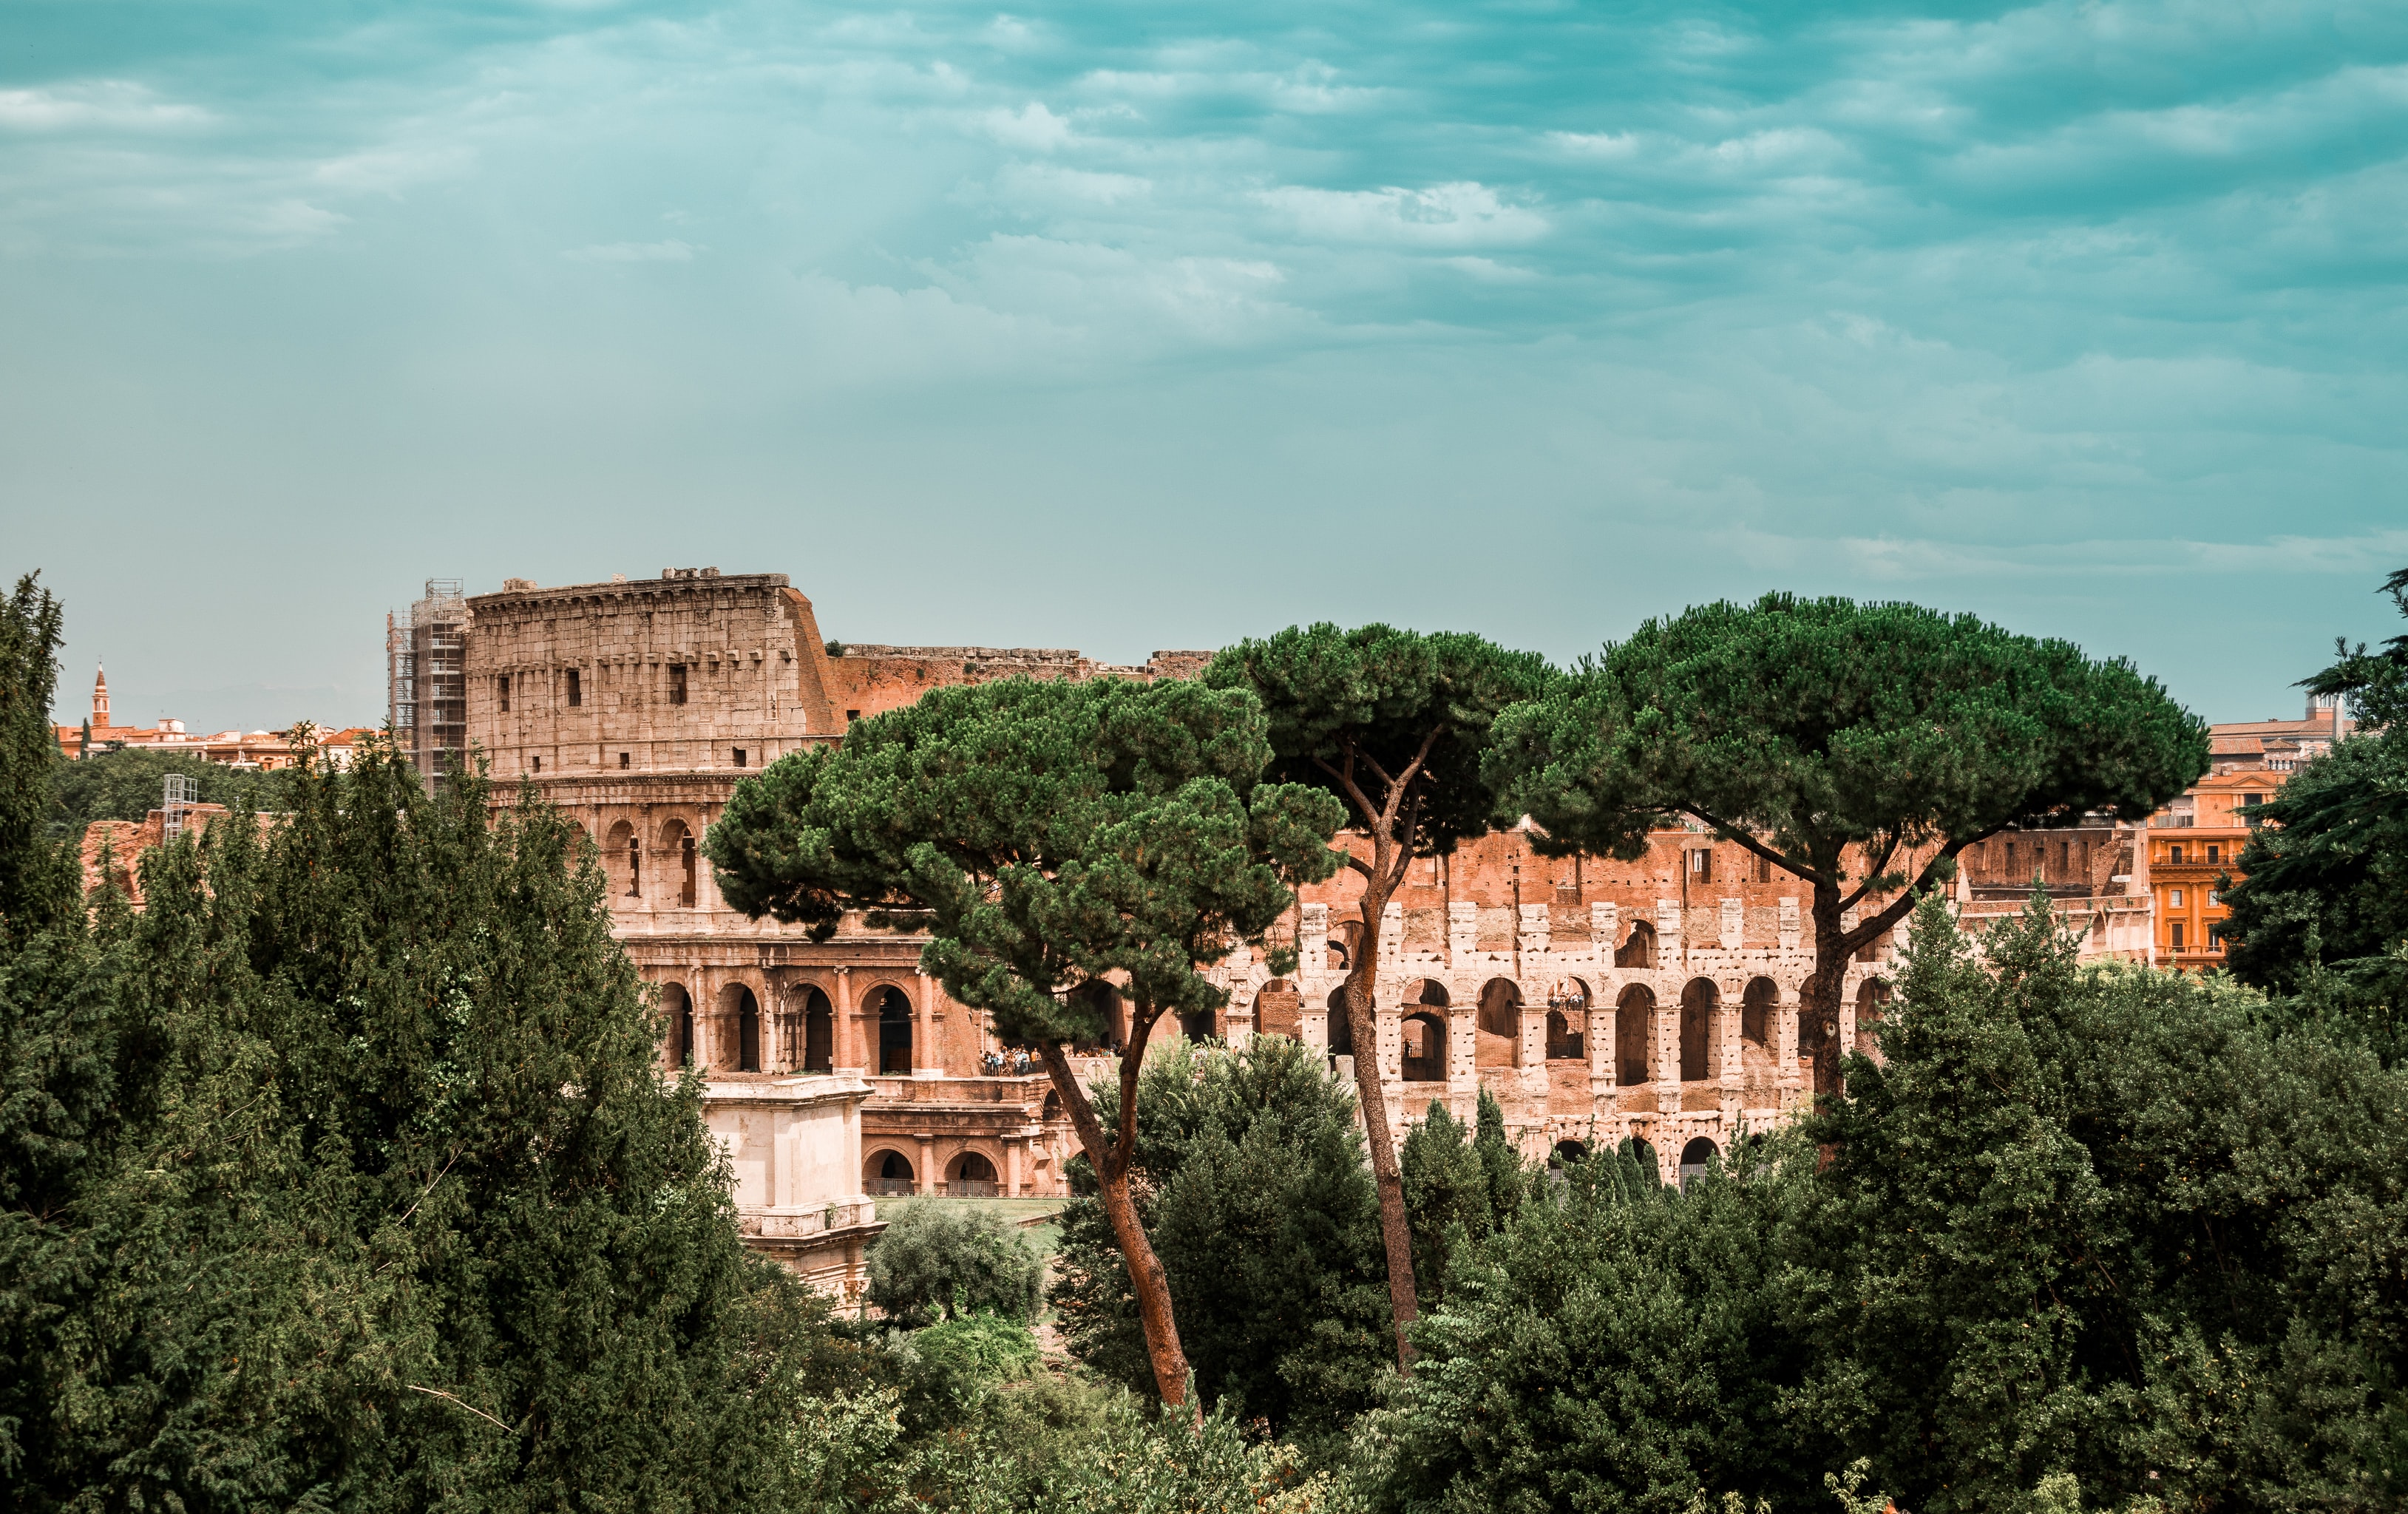 The ruins of the Roman Colosseum behind green trees